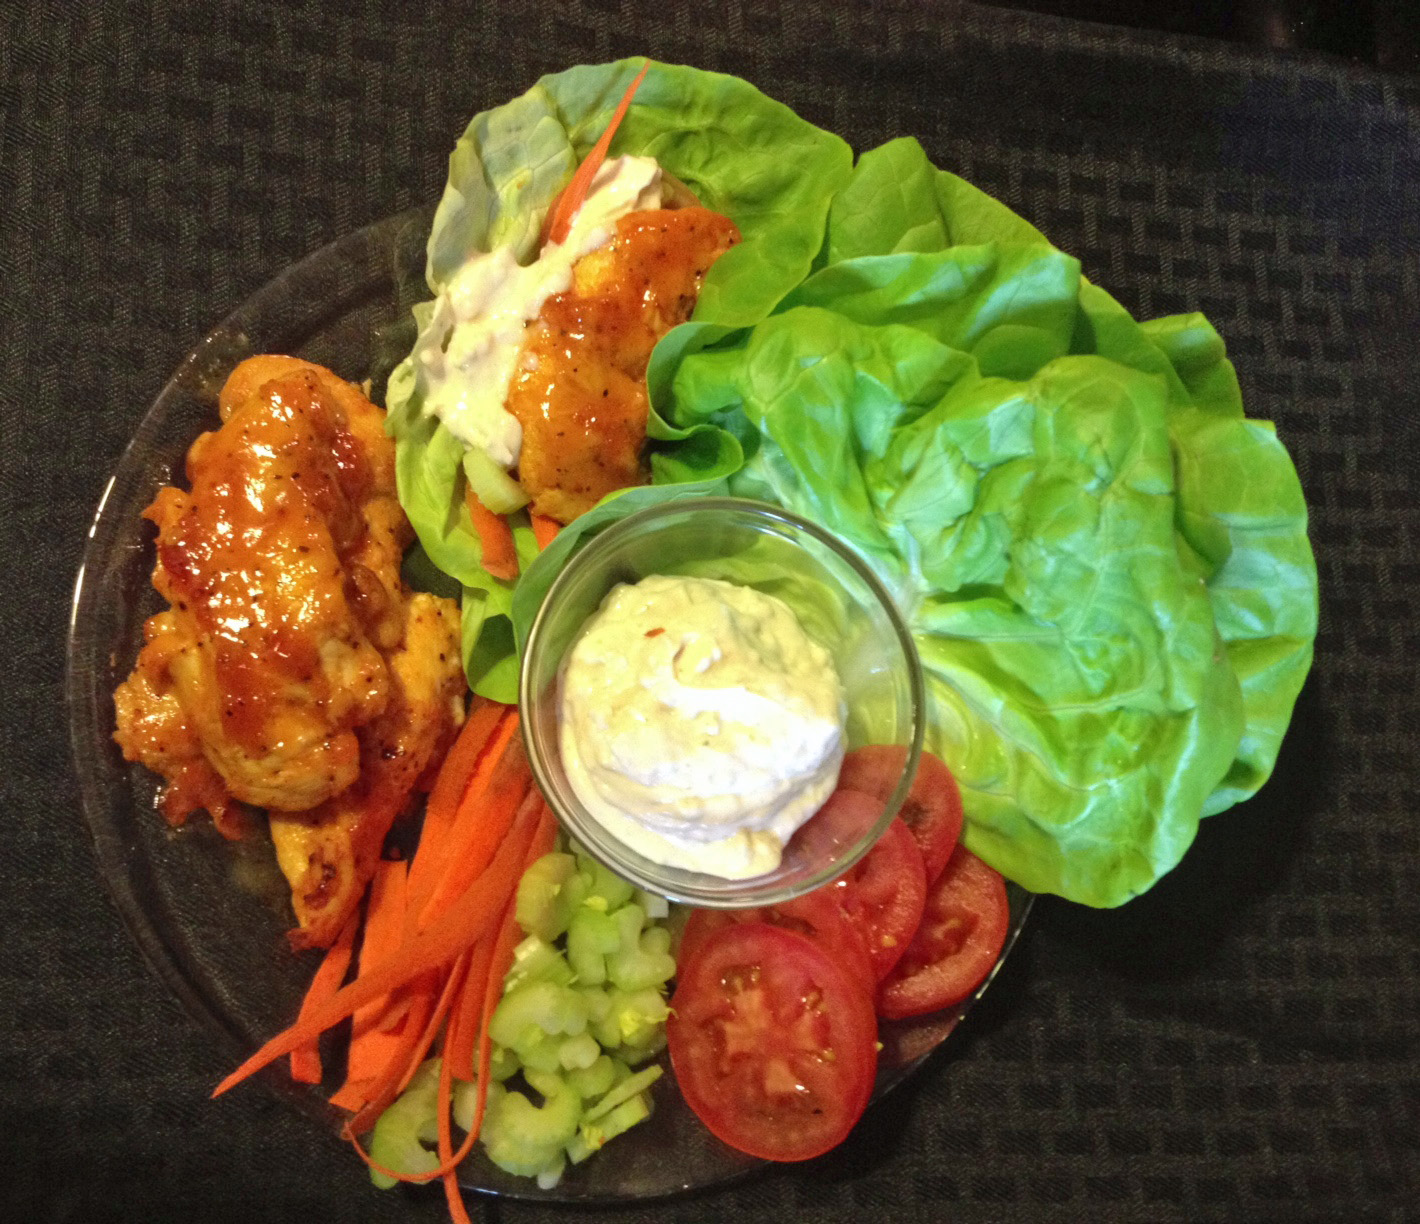 ... Dairy-Free Diva: Dairy and Gluten Free Buffalo Chicken Lettuce Cups